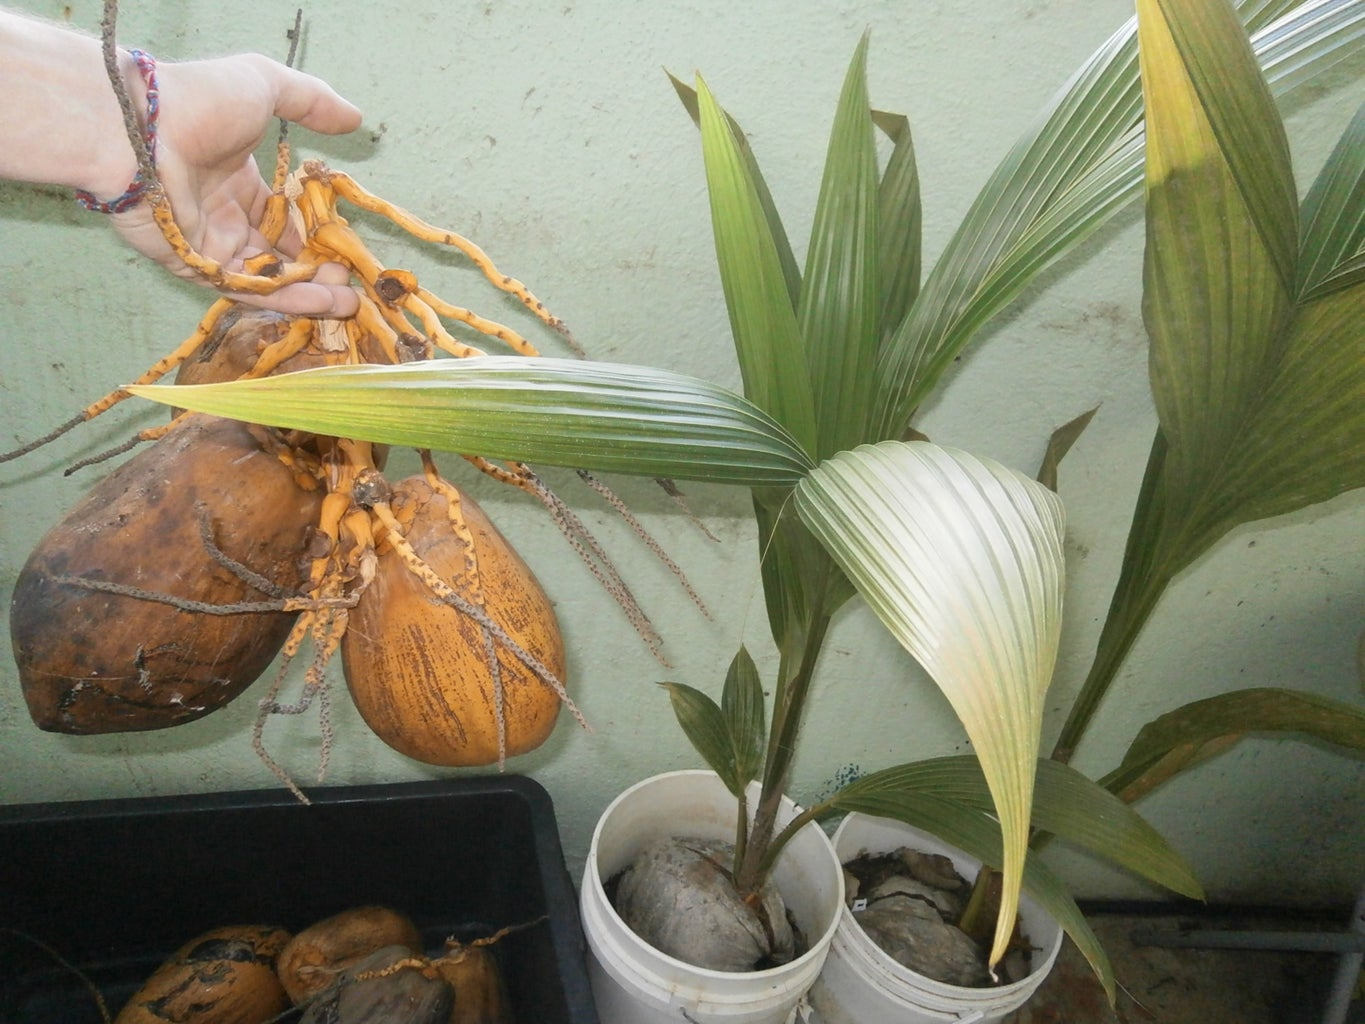 From Coconut to Palmtree